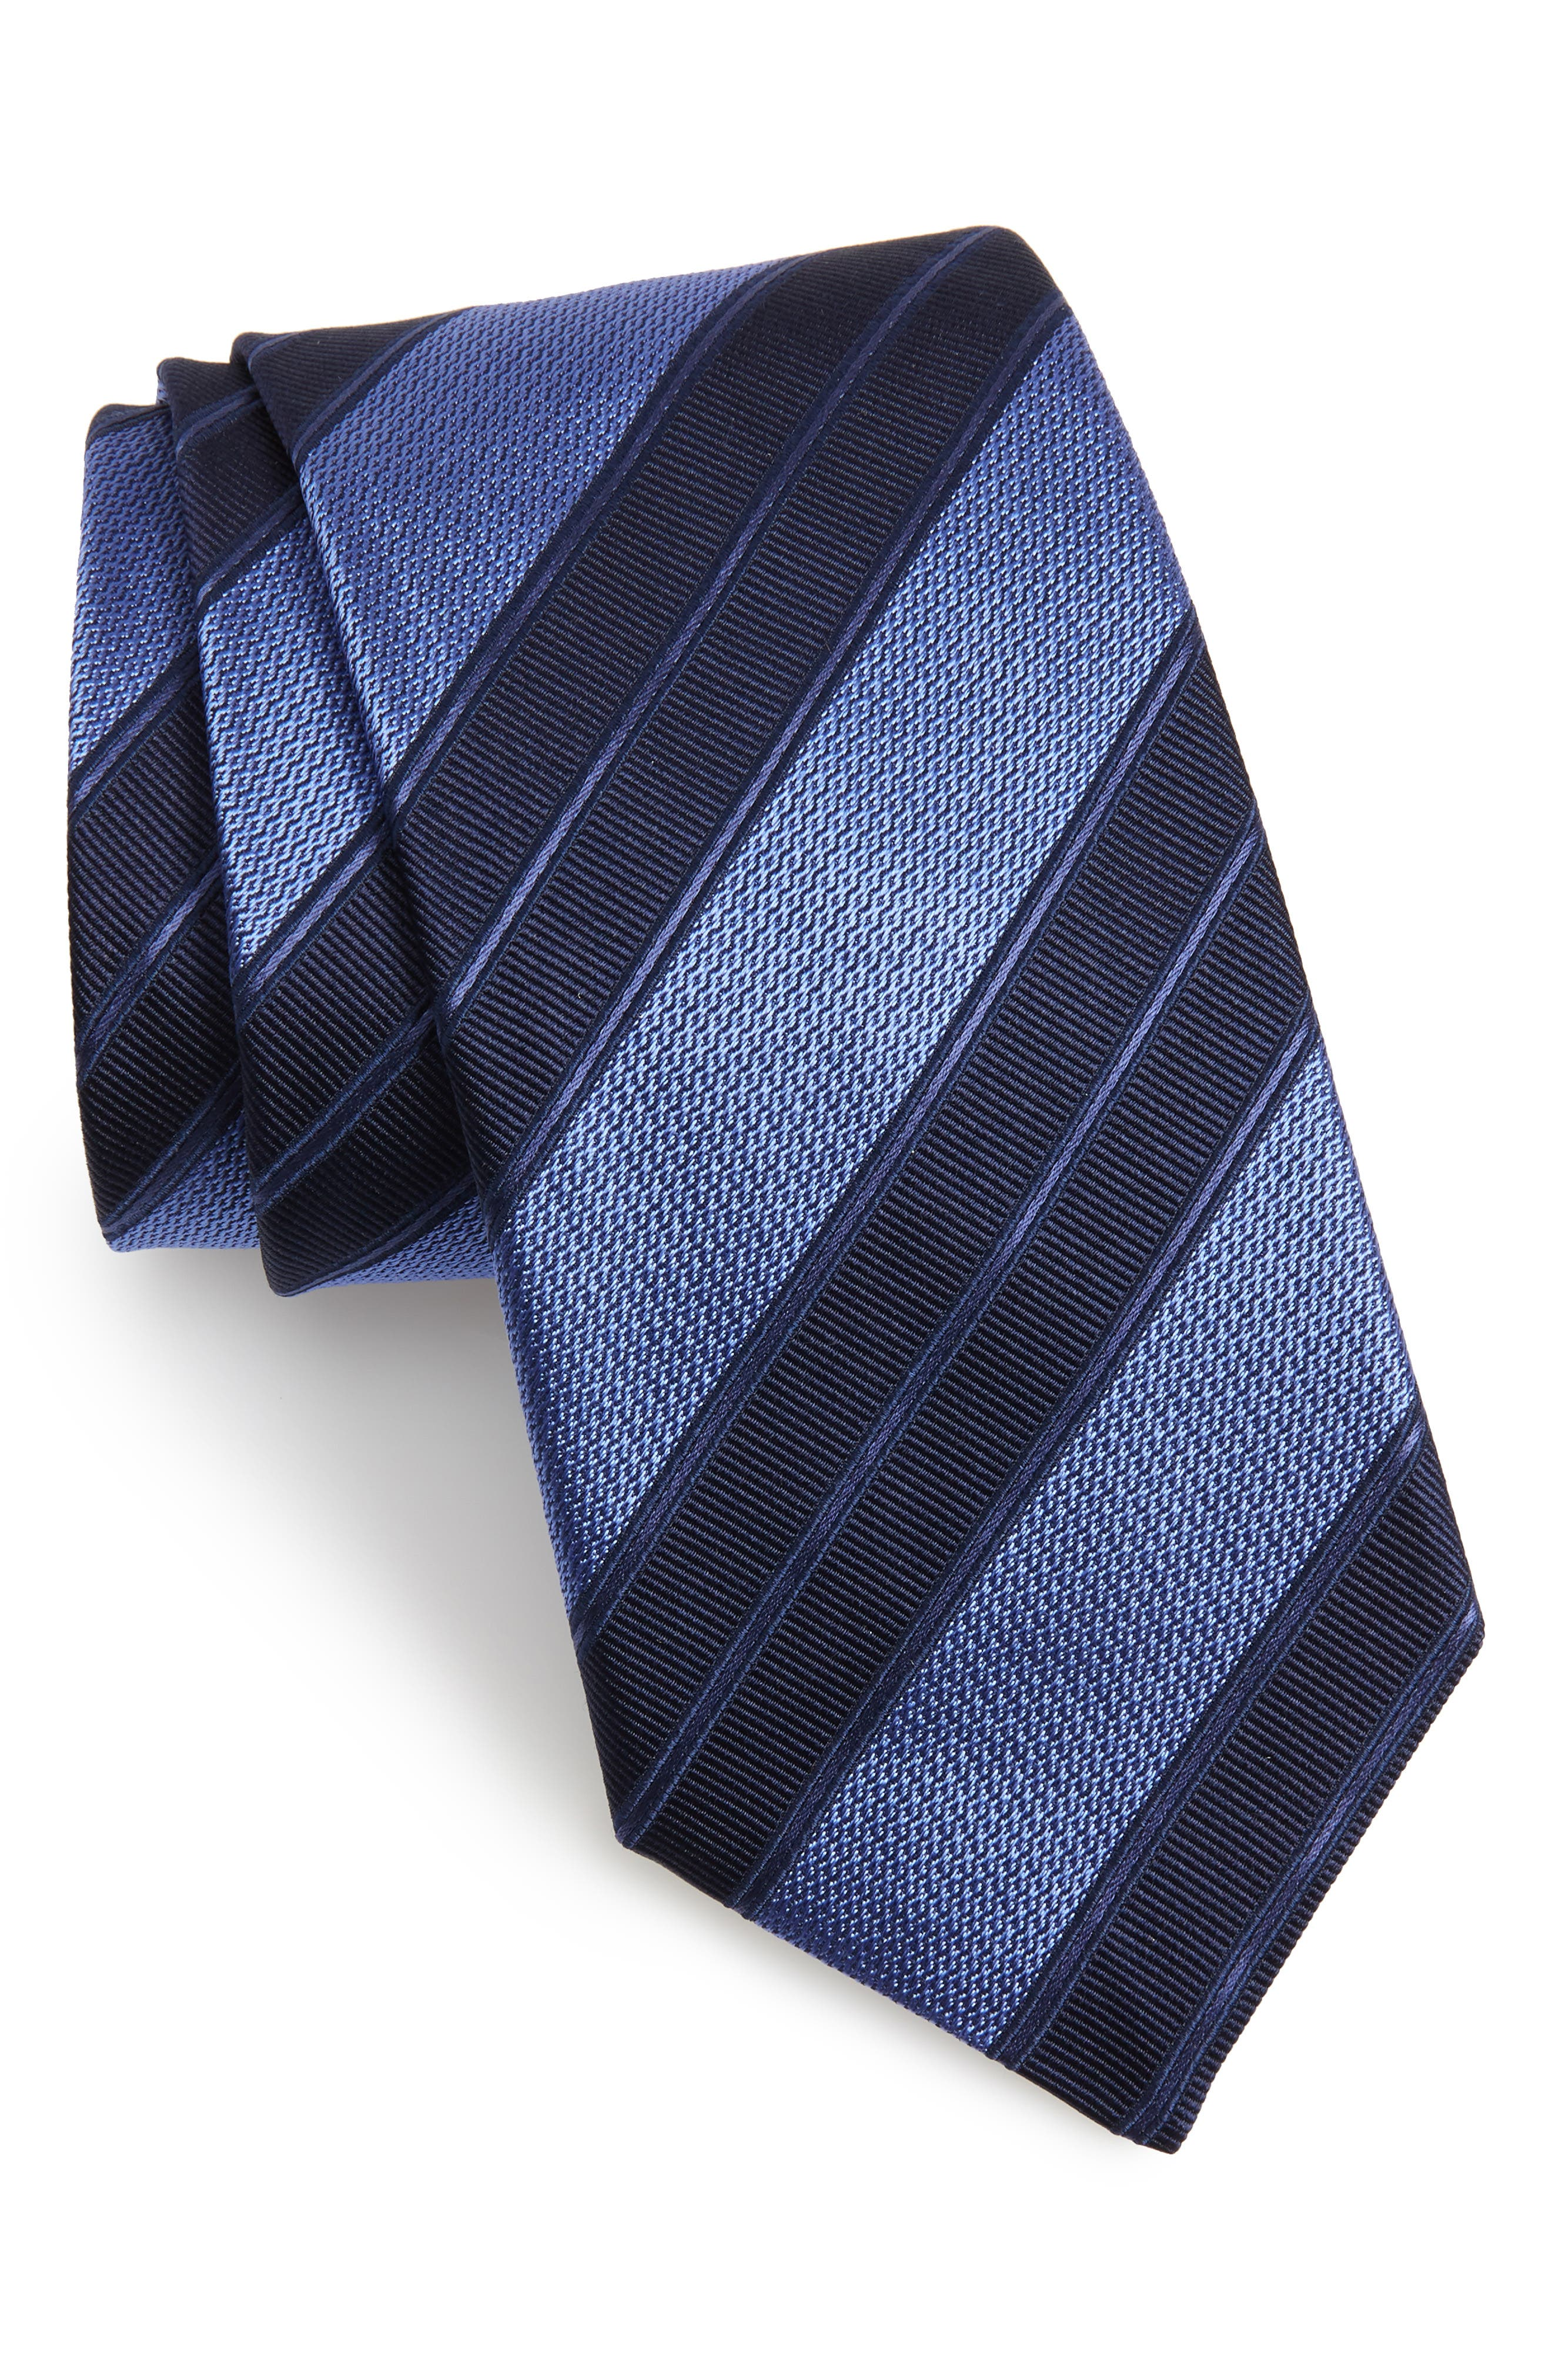 Stripe Silk Tie,                         Main,                         color, 410